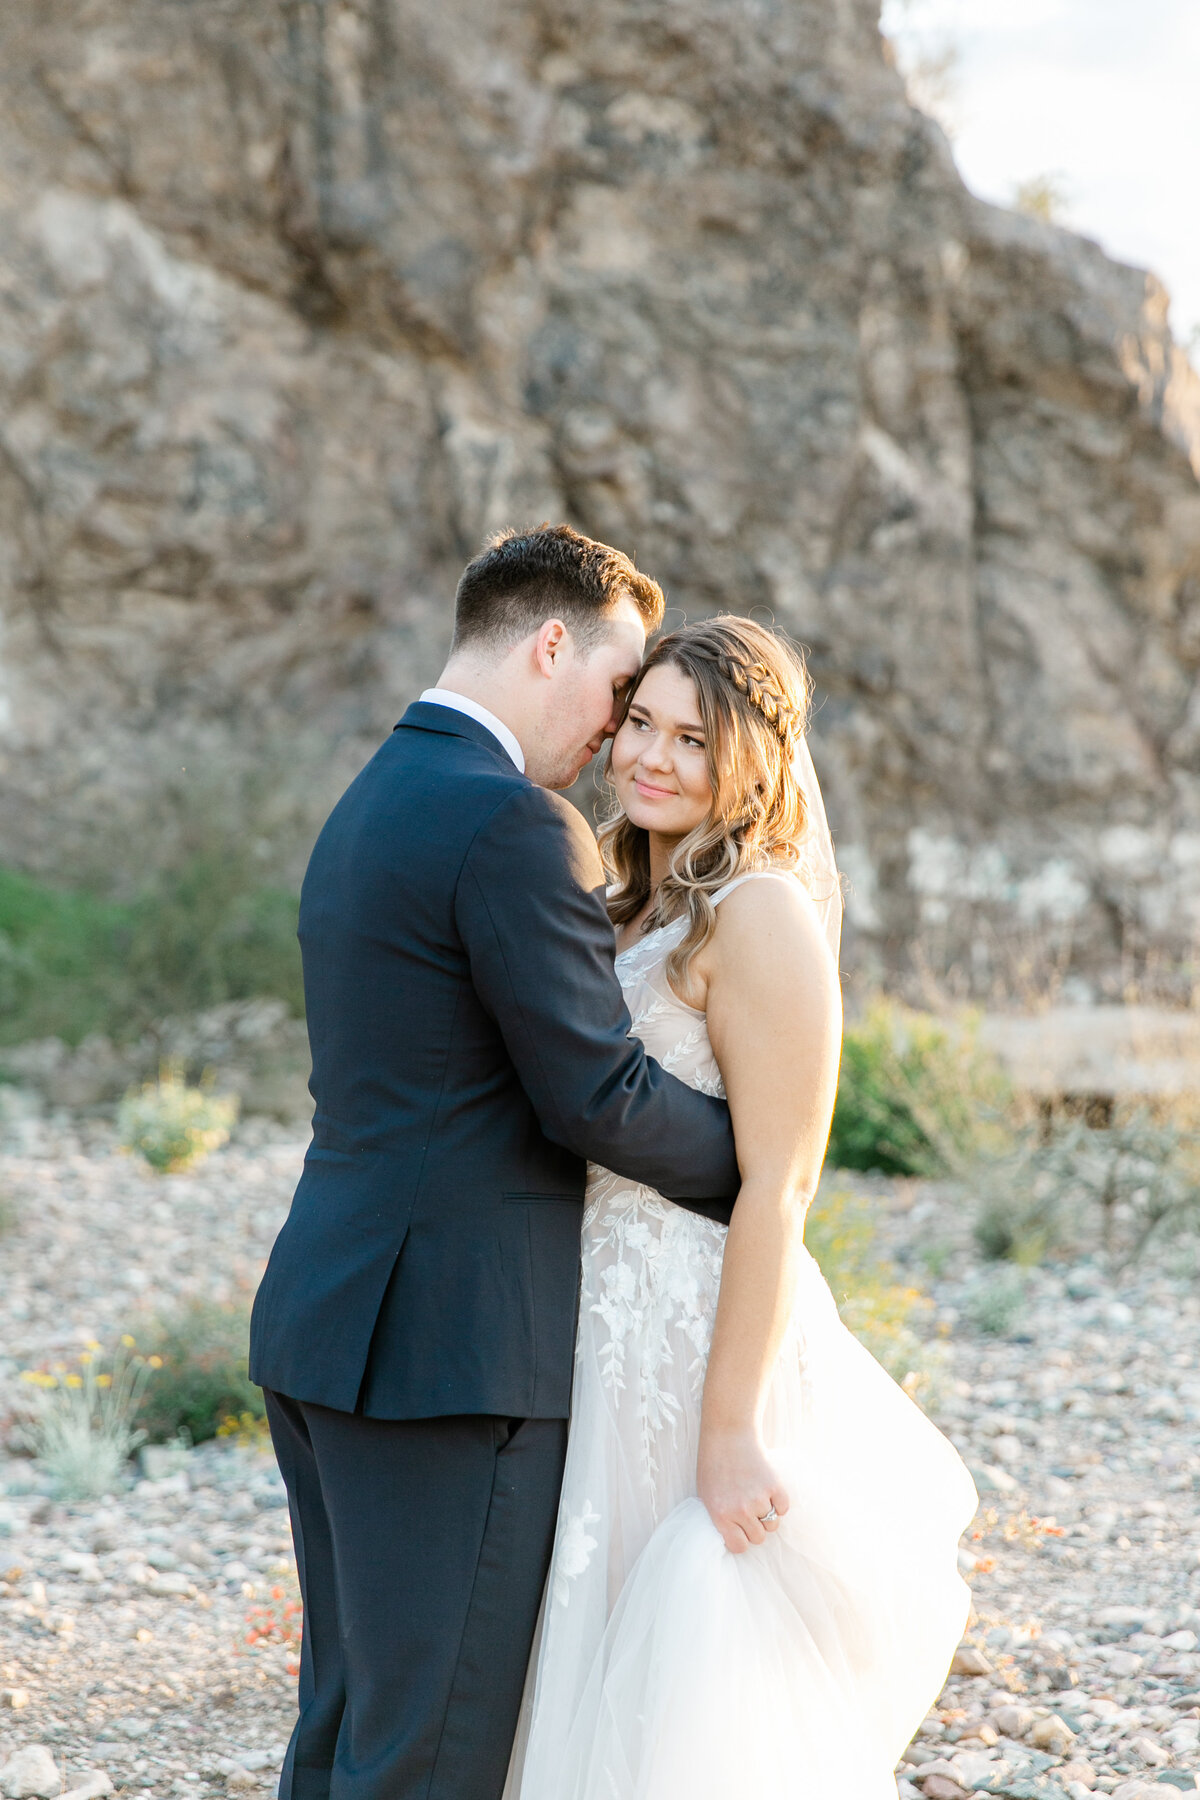 Karlie Colleen Photography - Arizona Backyard wedding - Brittney & Josh-209